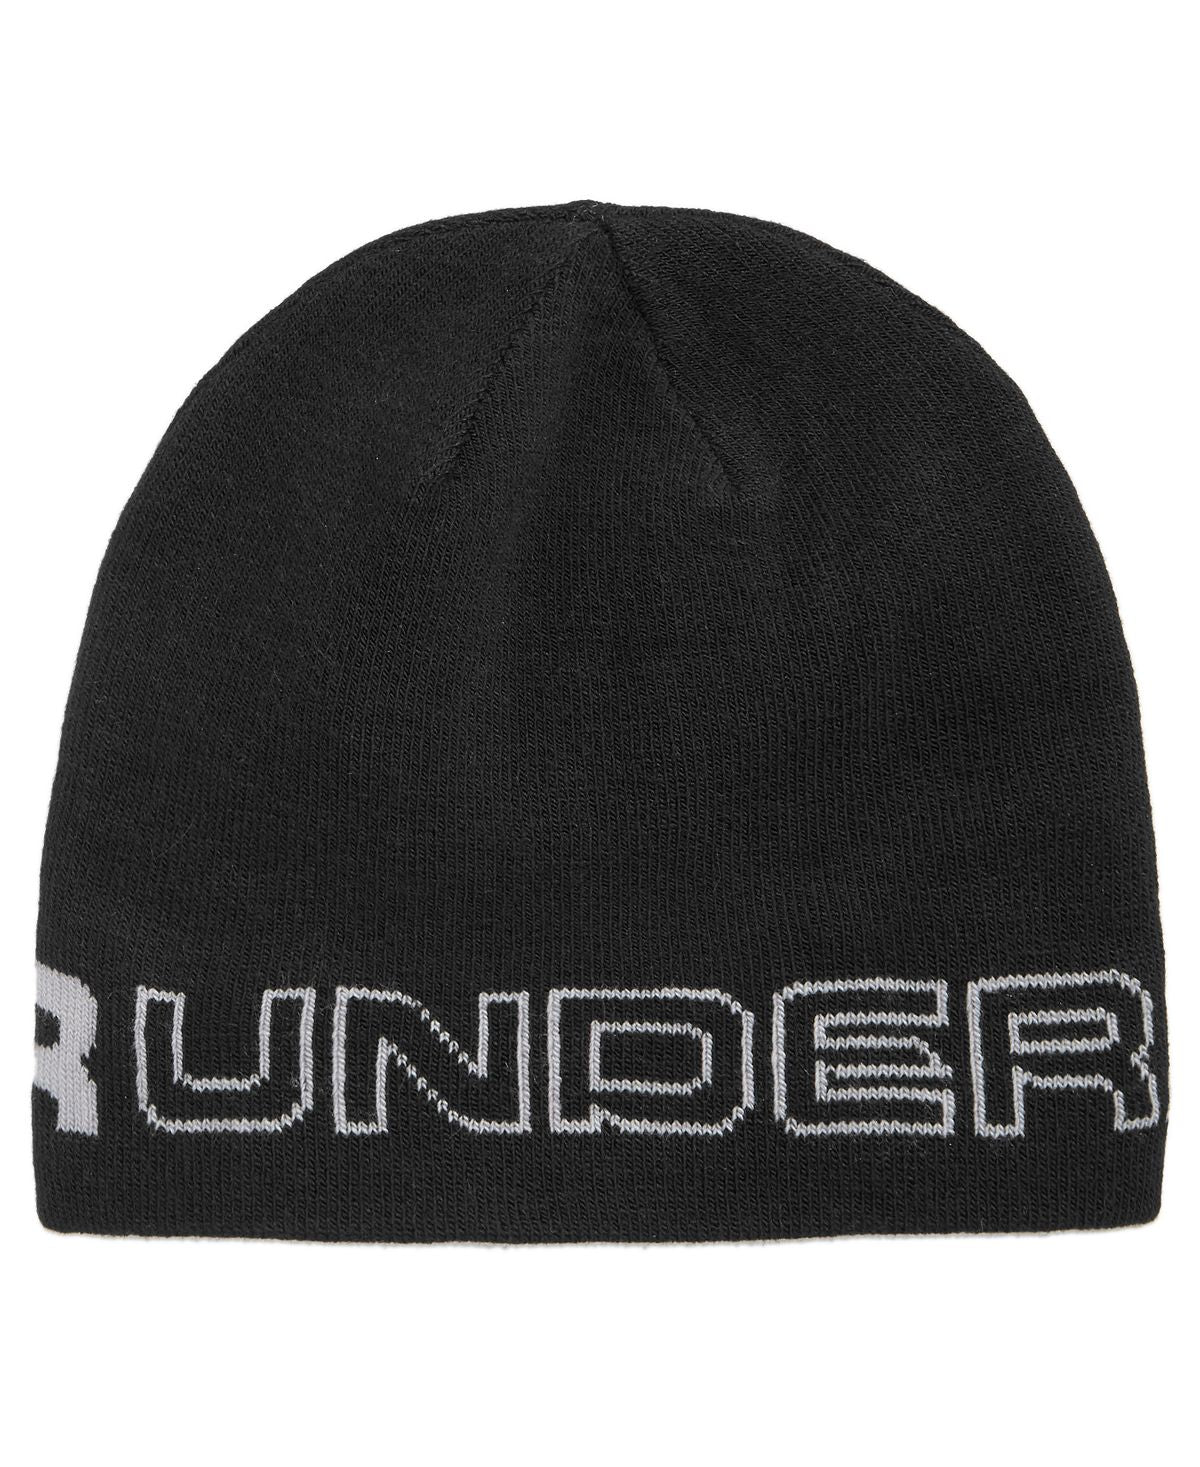 Under Armour Wordmark Beanie Black